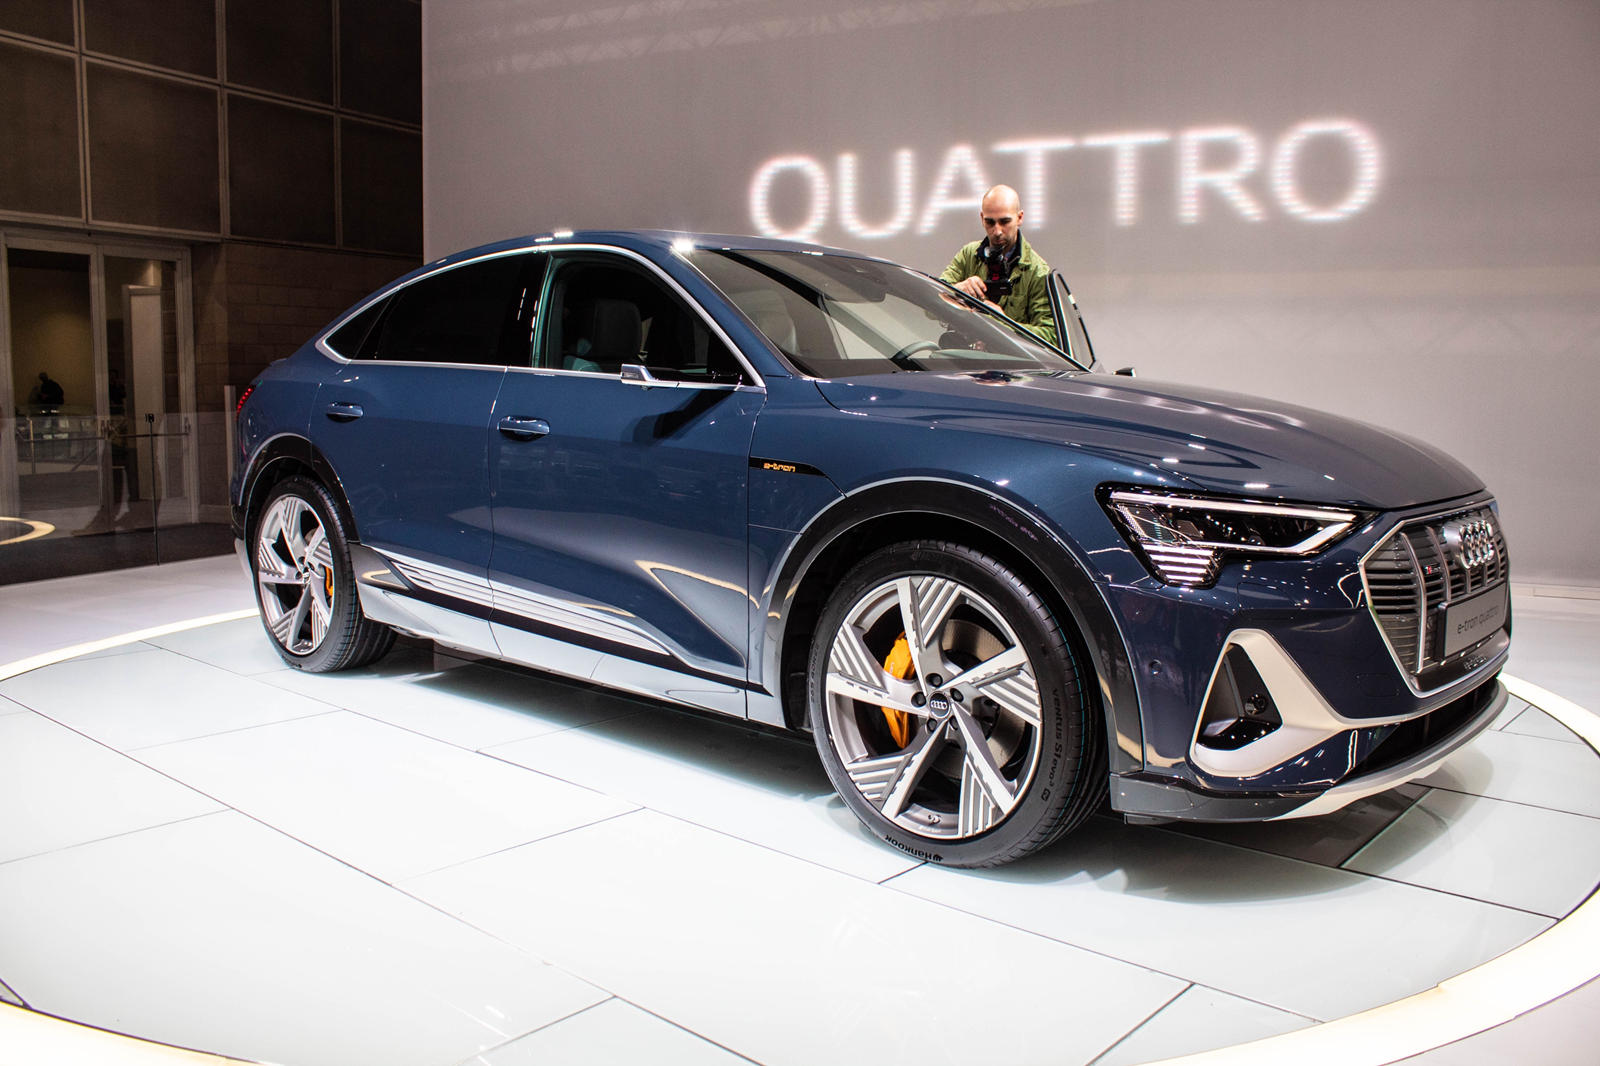 Say Hello To The 2020 Audi e-tron Sportback (And The ...